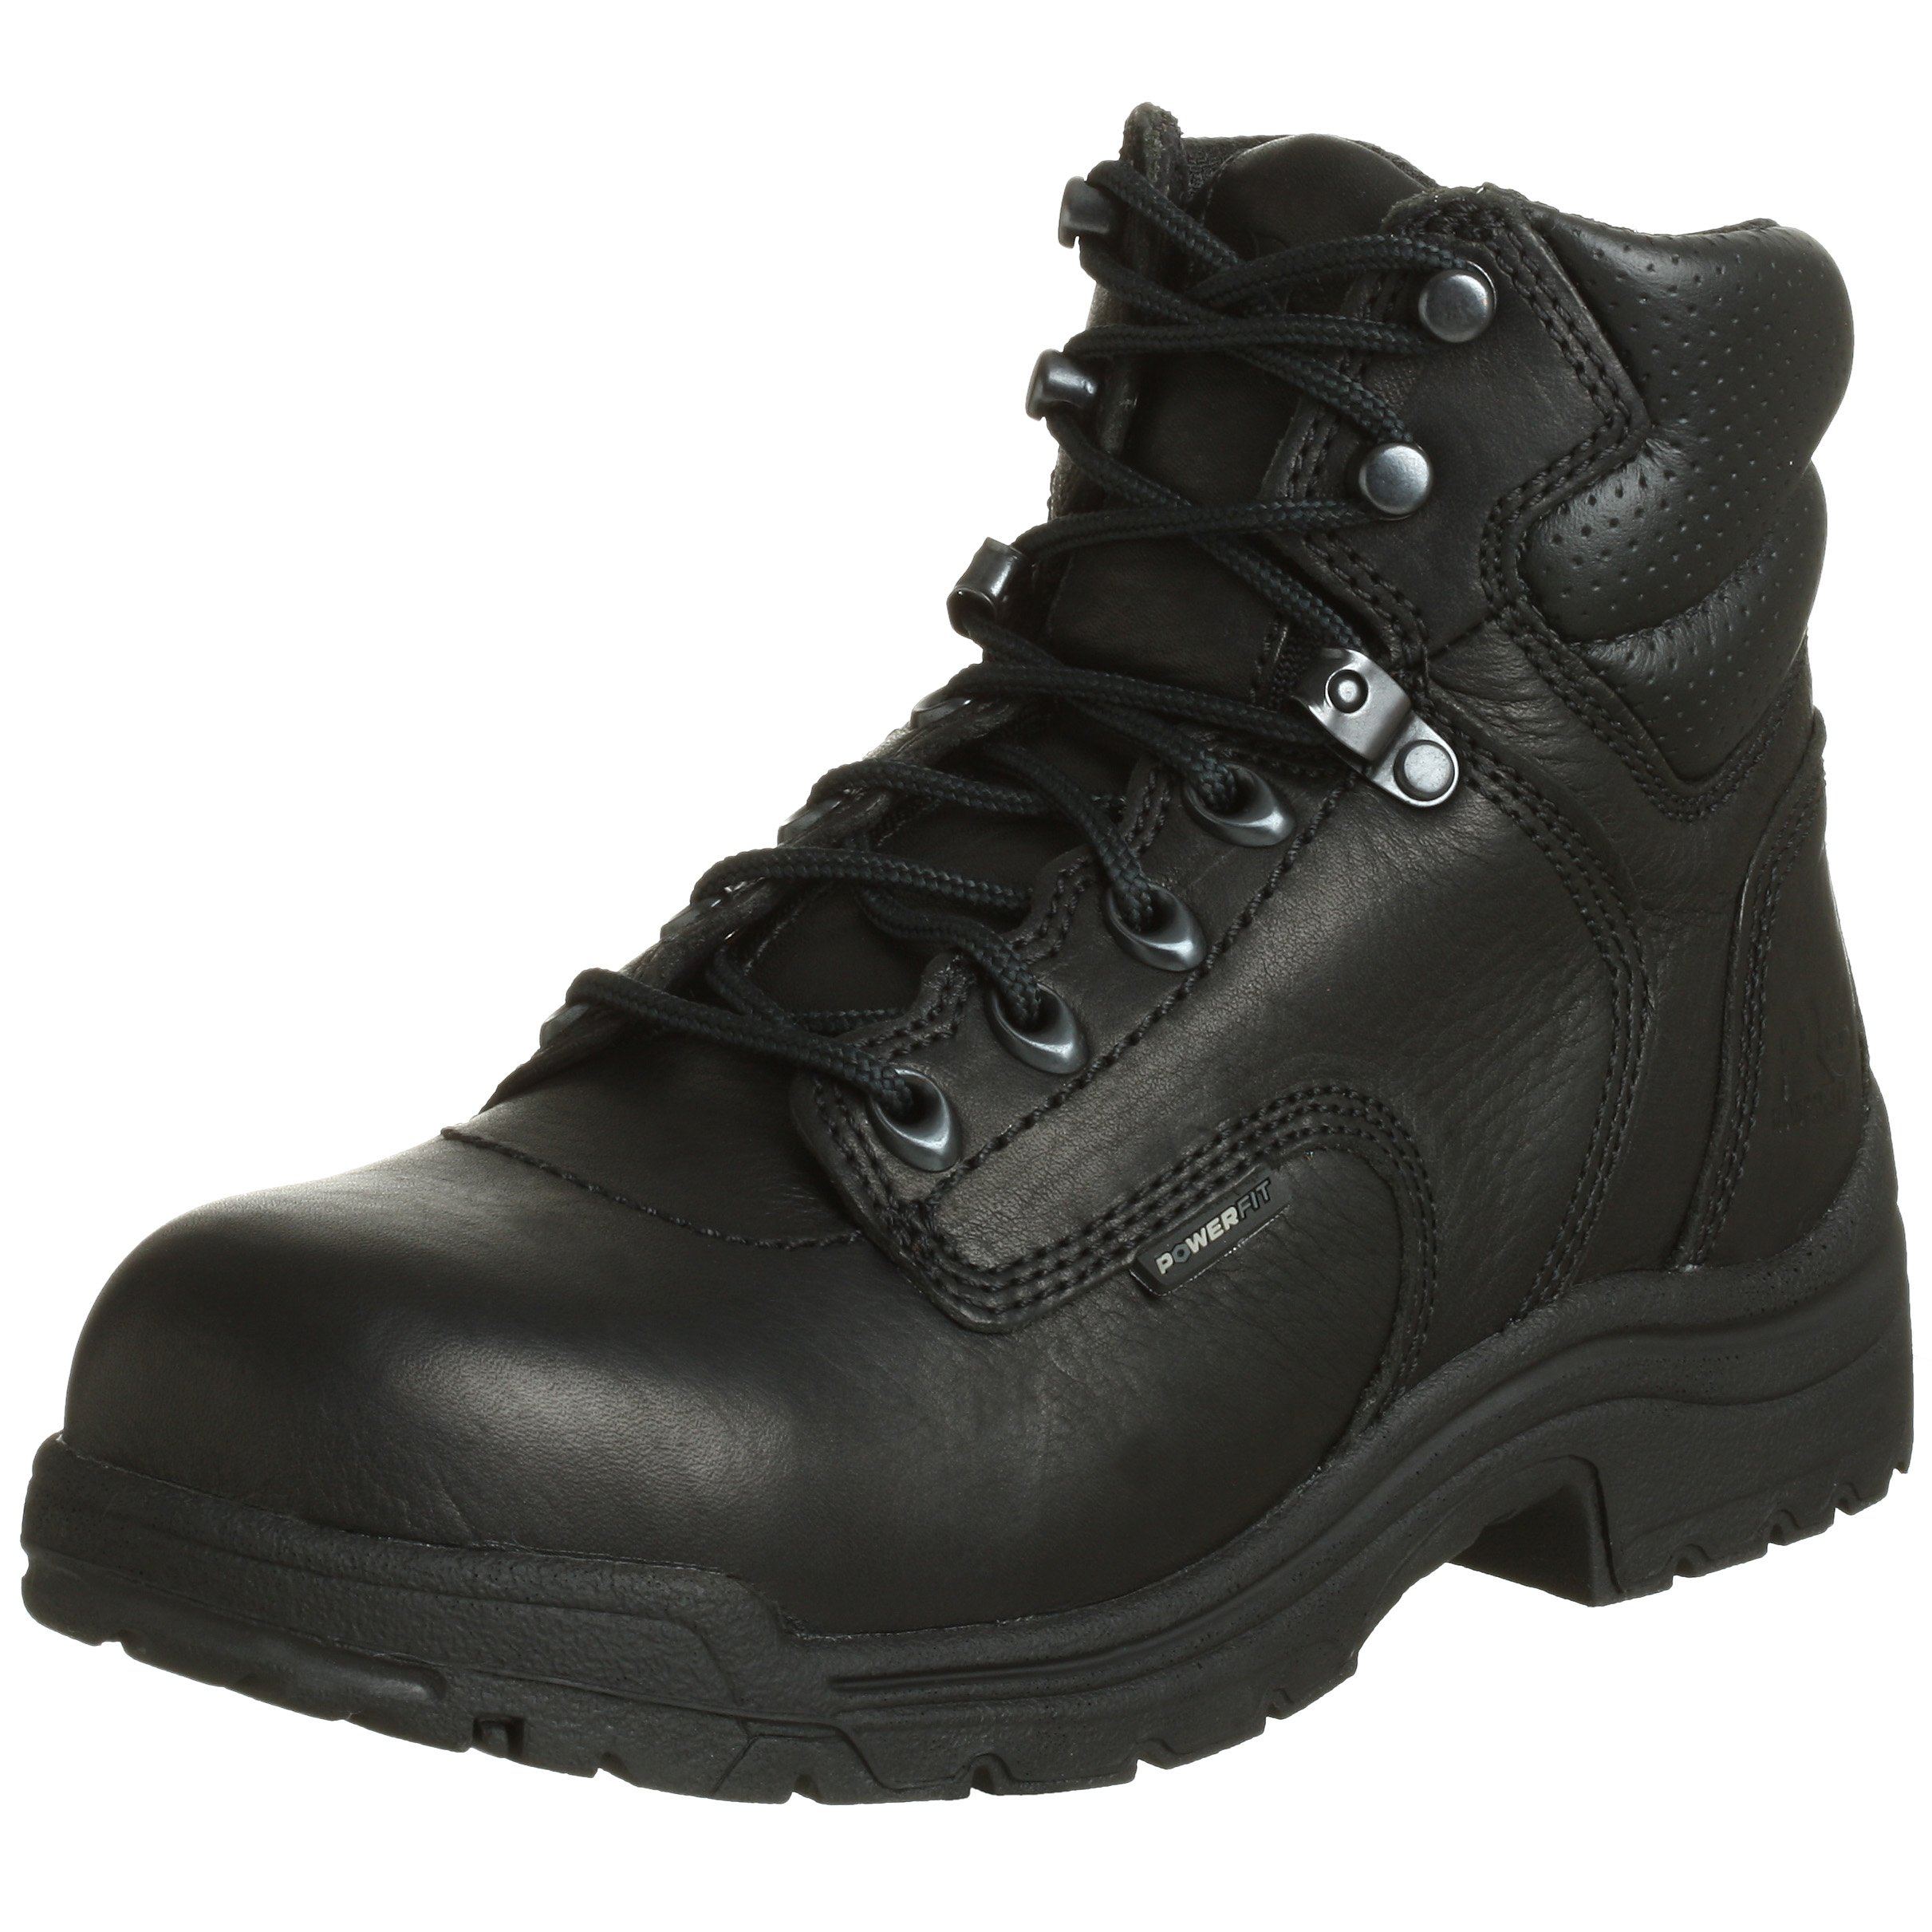 Timberland PRO Women's 72399 Titan 6'' Safety-Toe Boot,Black,8.5 M